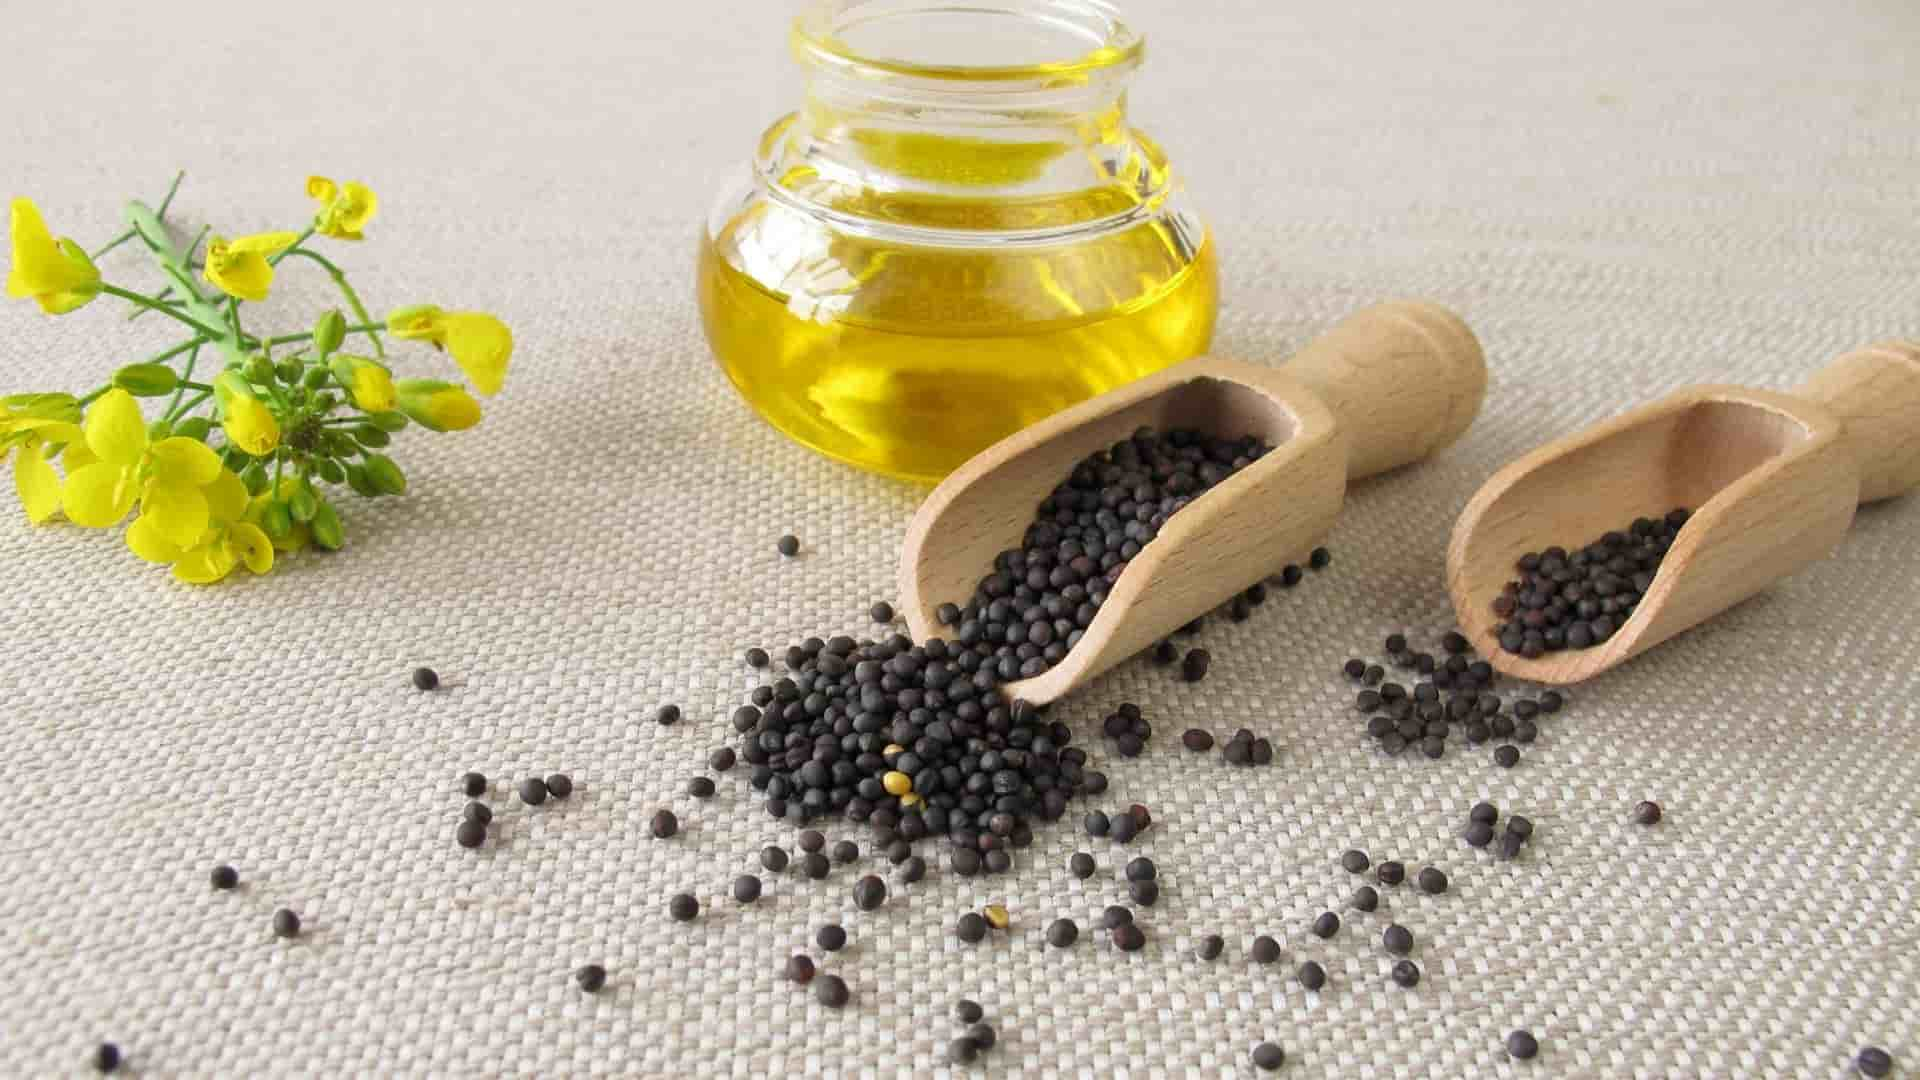 Can You Deep Fry with Canola Oil? Let's explore - Dwell Hack 1